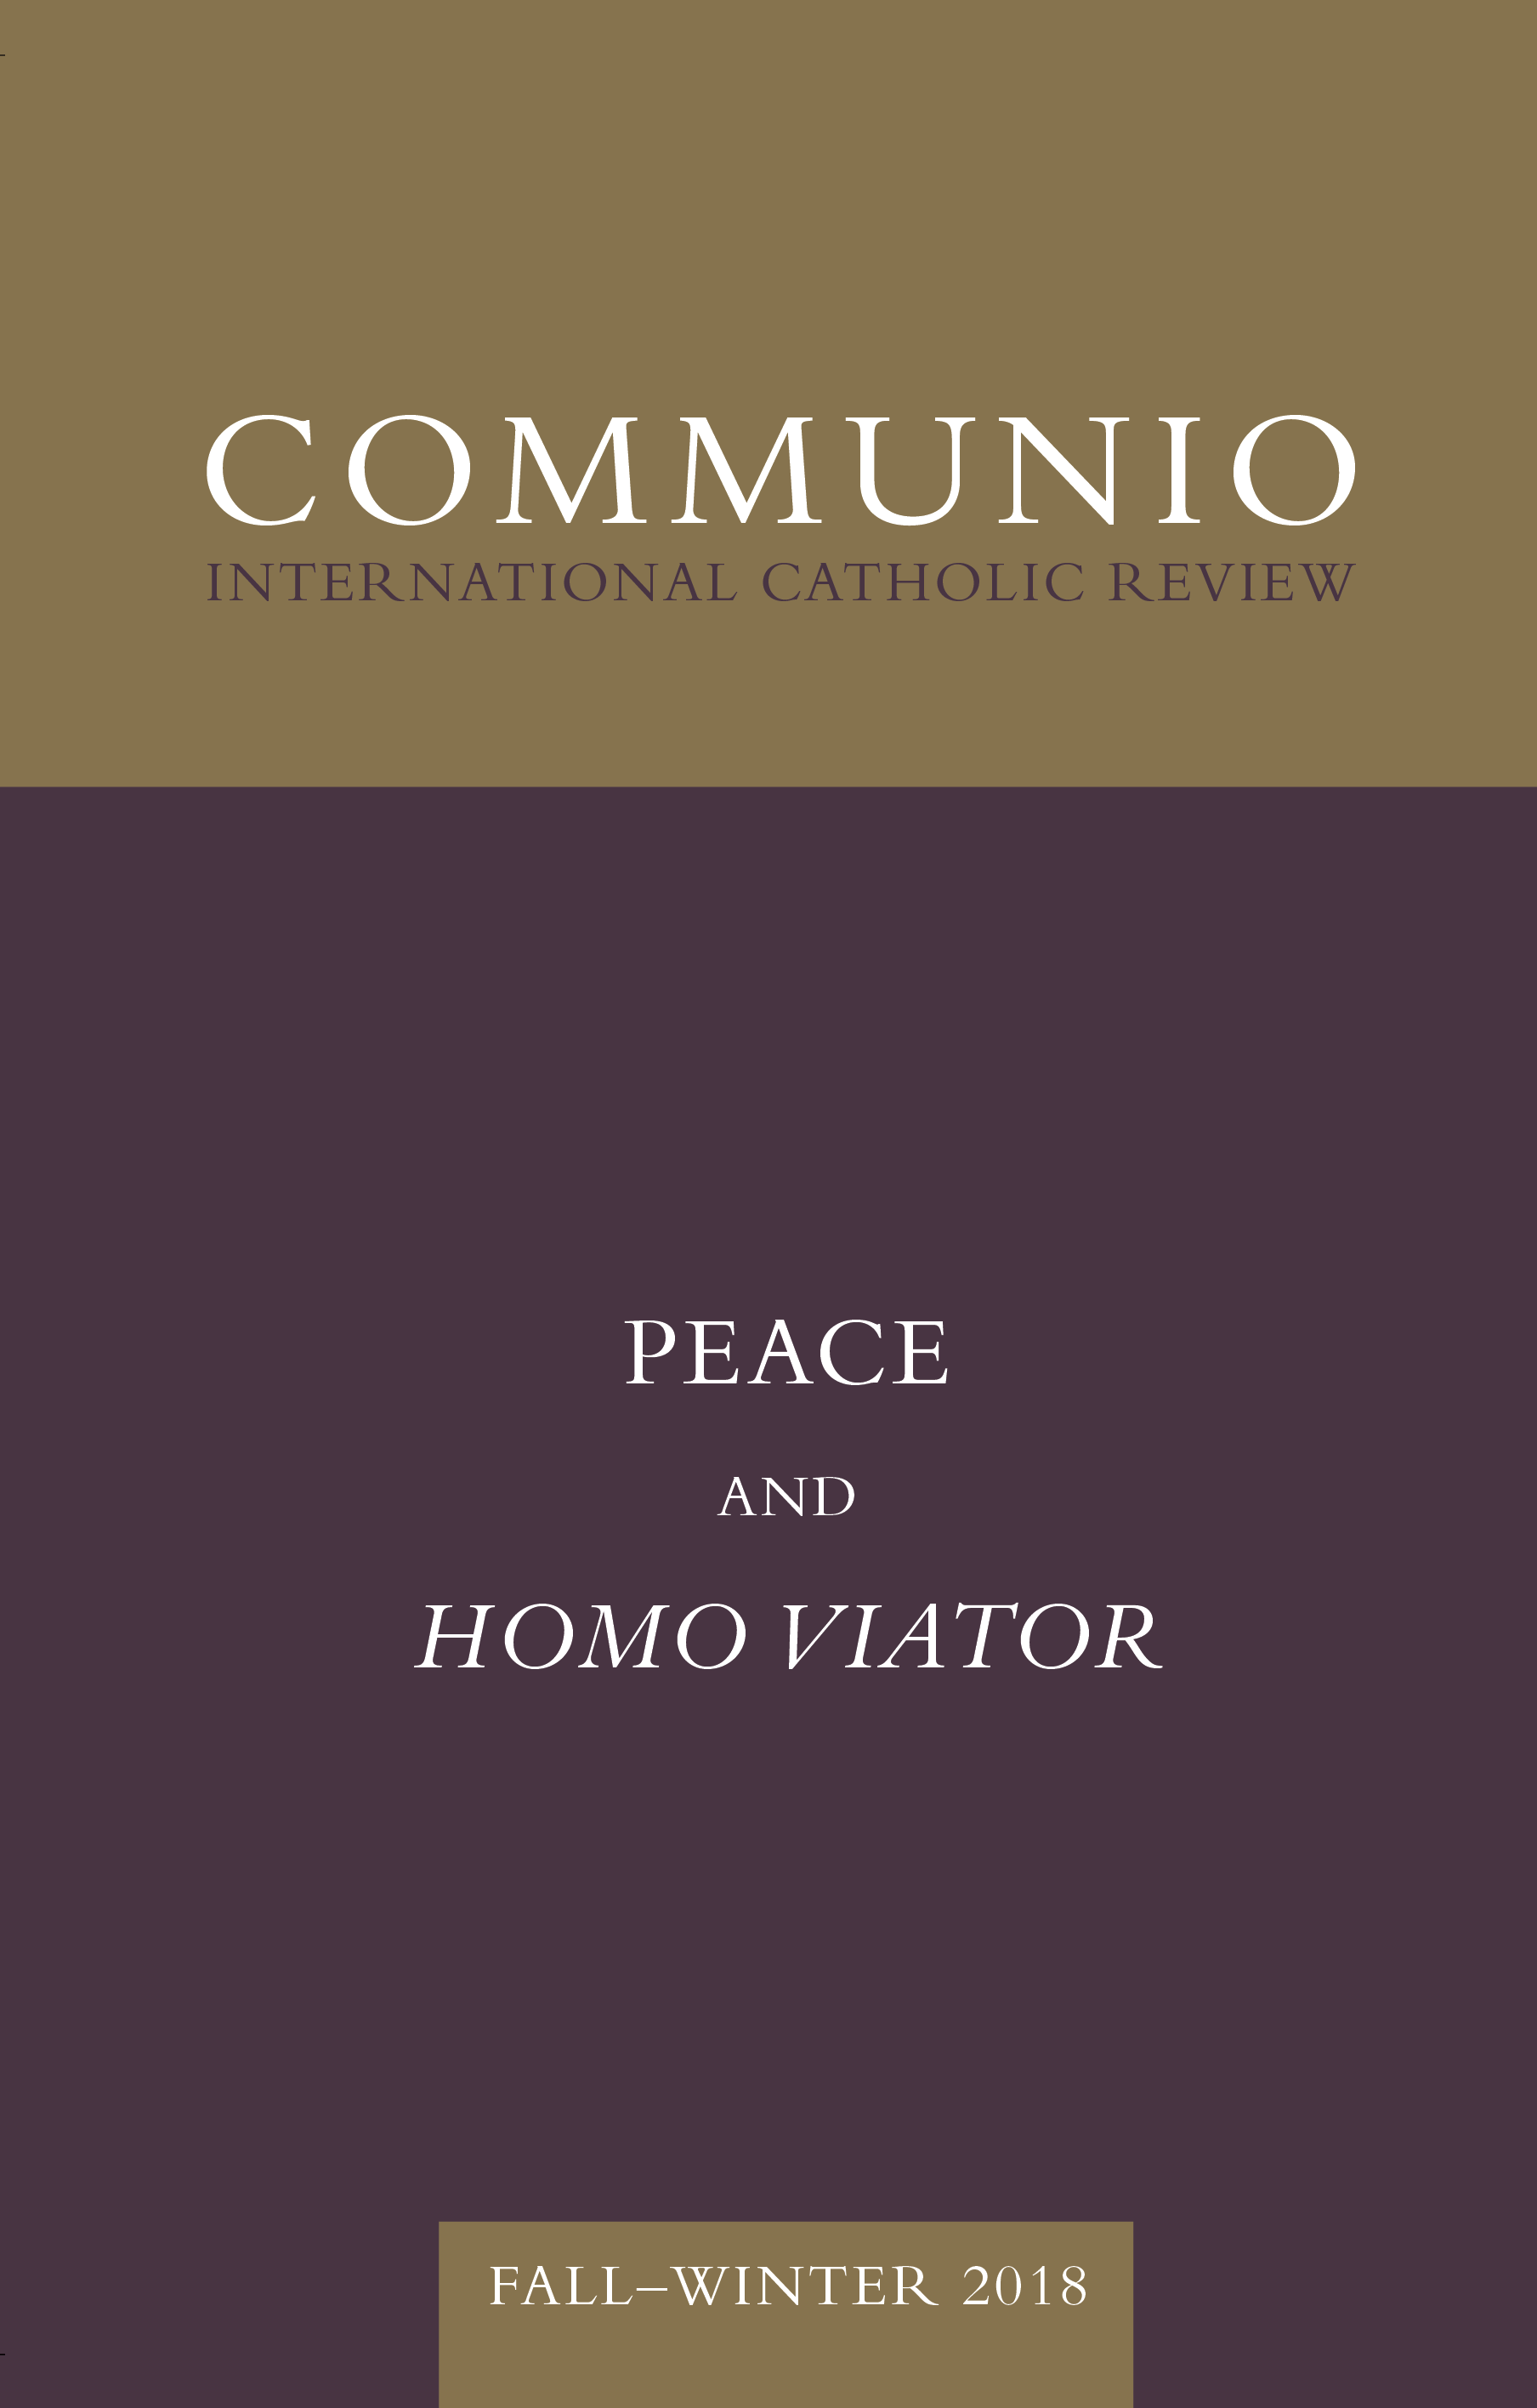 Communio - Fall–Winter 2018 - Peace and Homo Viator